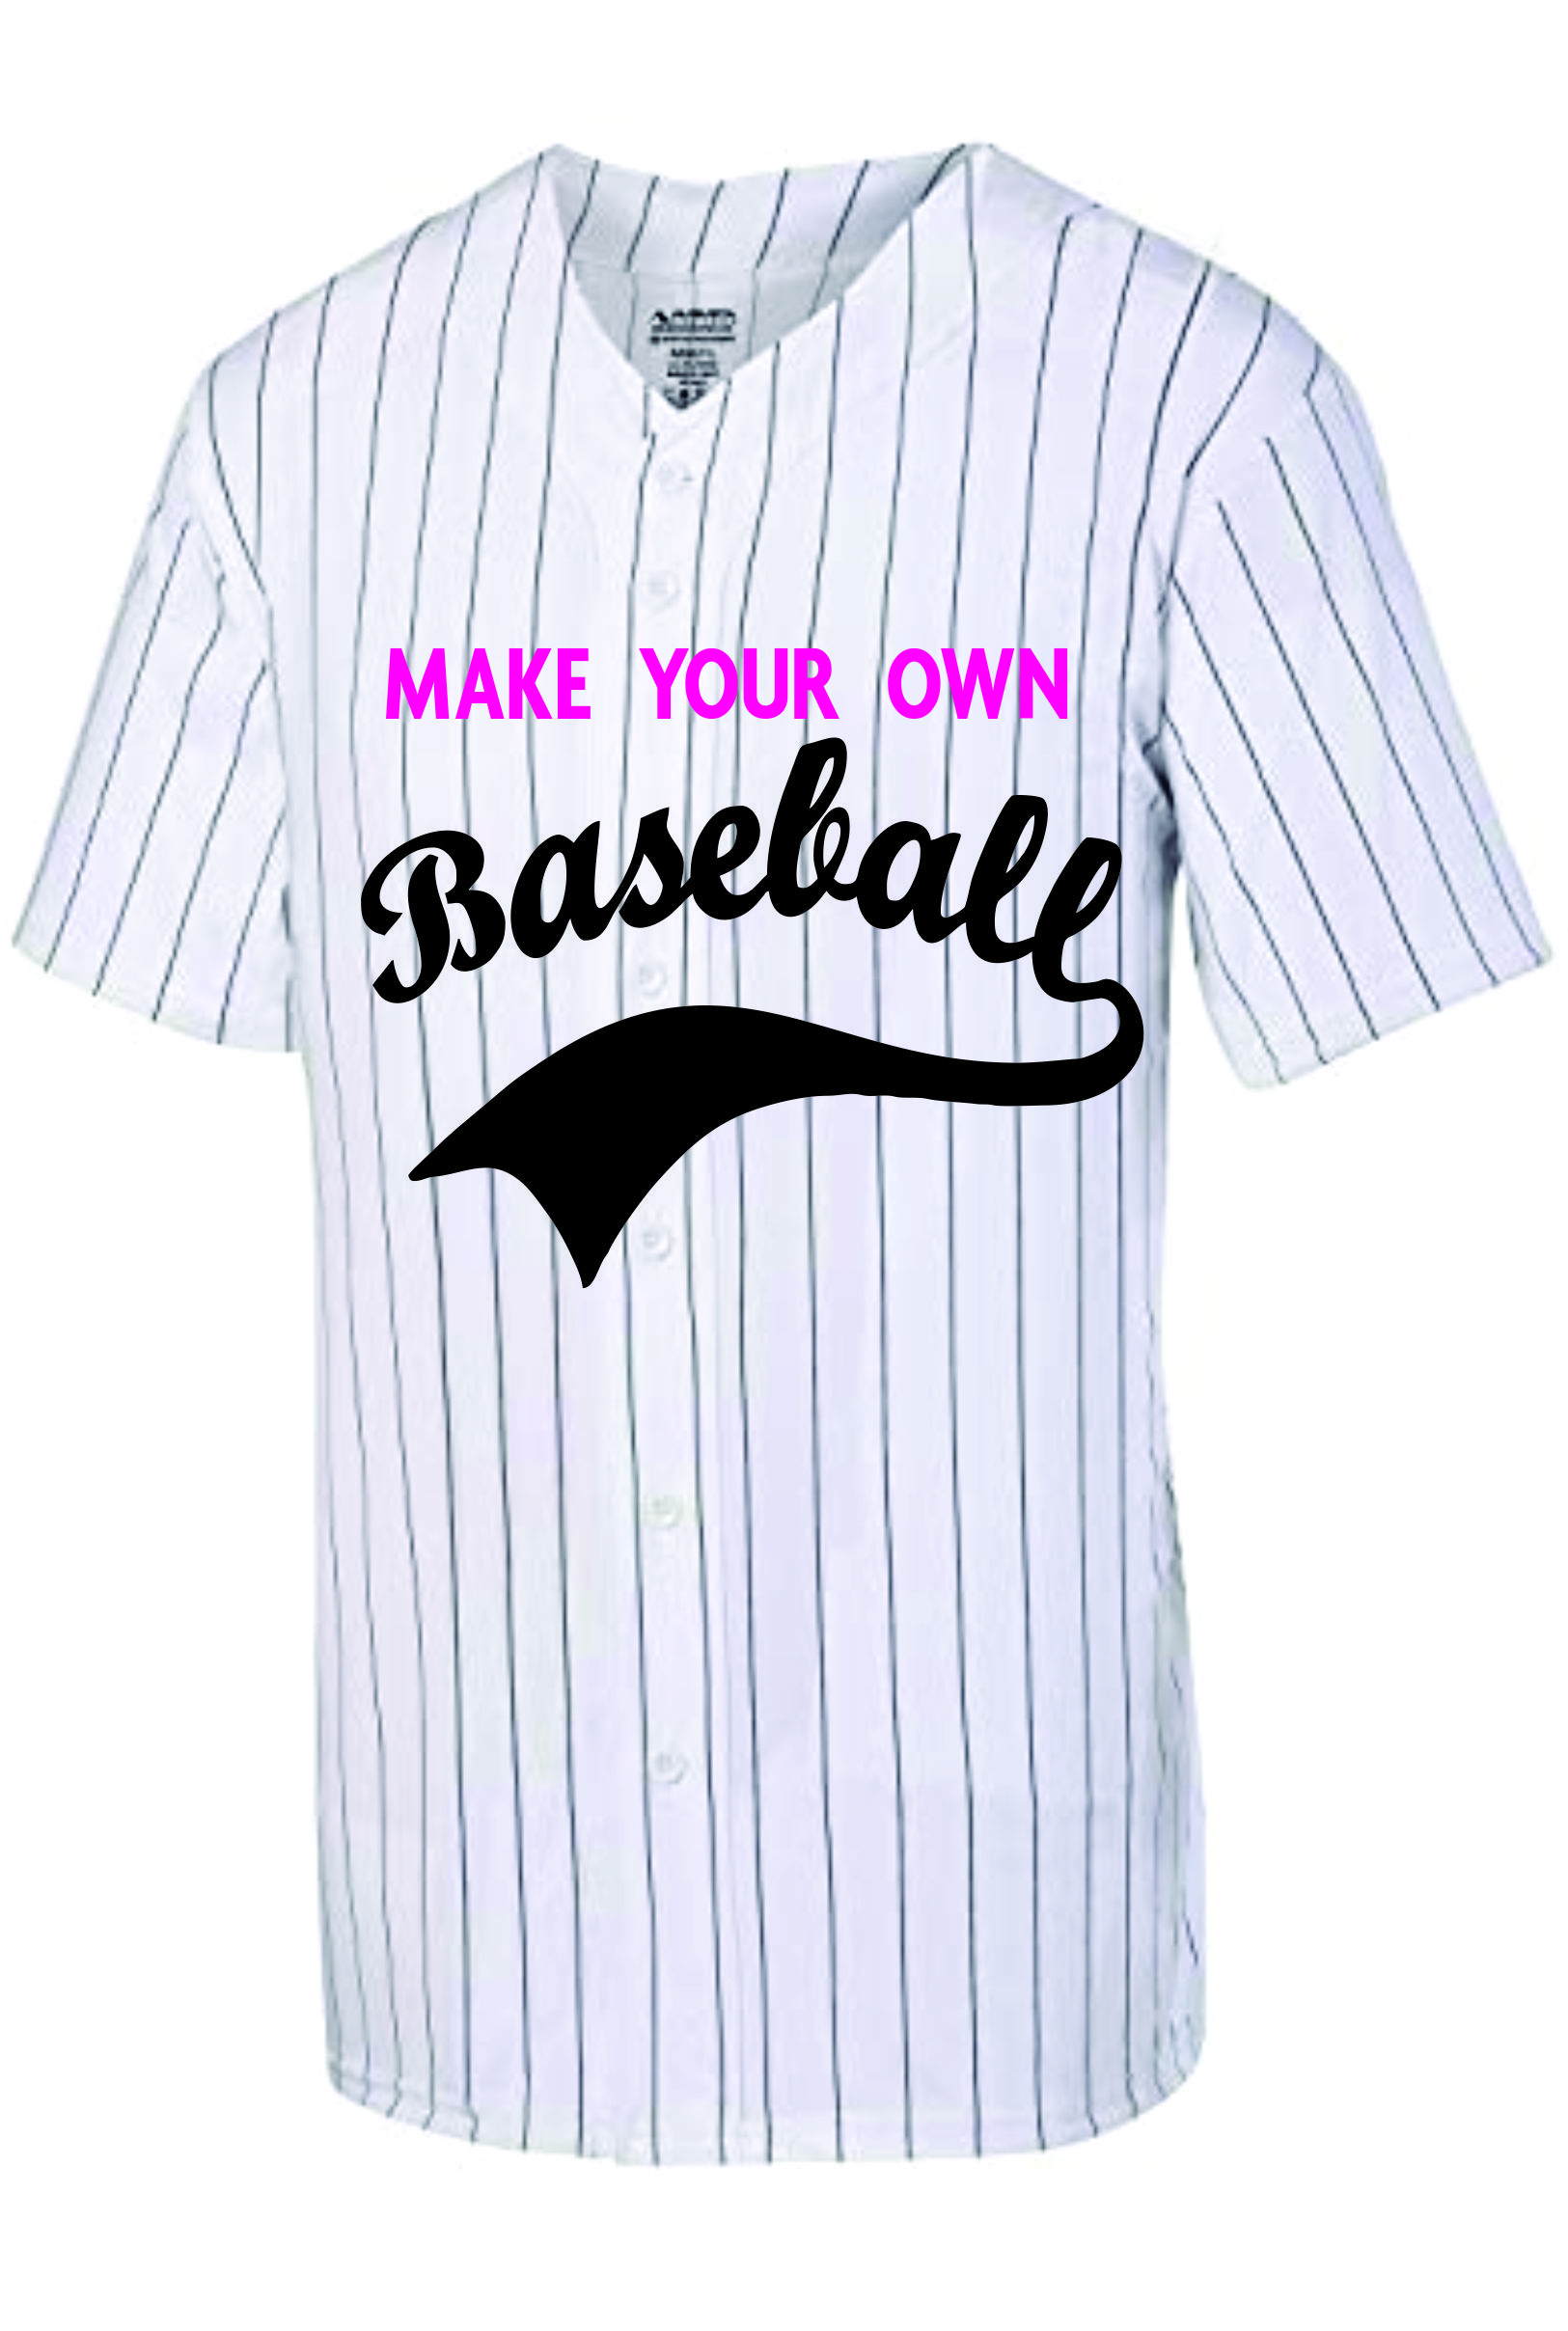 Custom Pinstripe Baseball jersey | Design Your Own | No Min